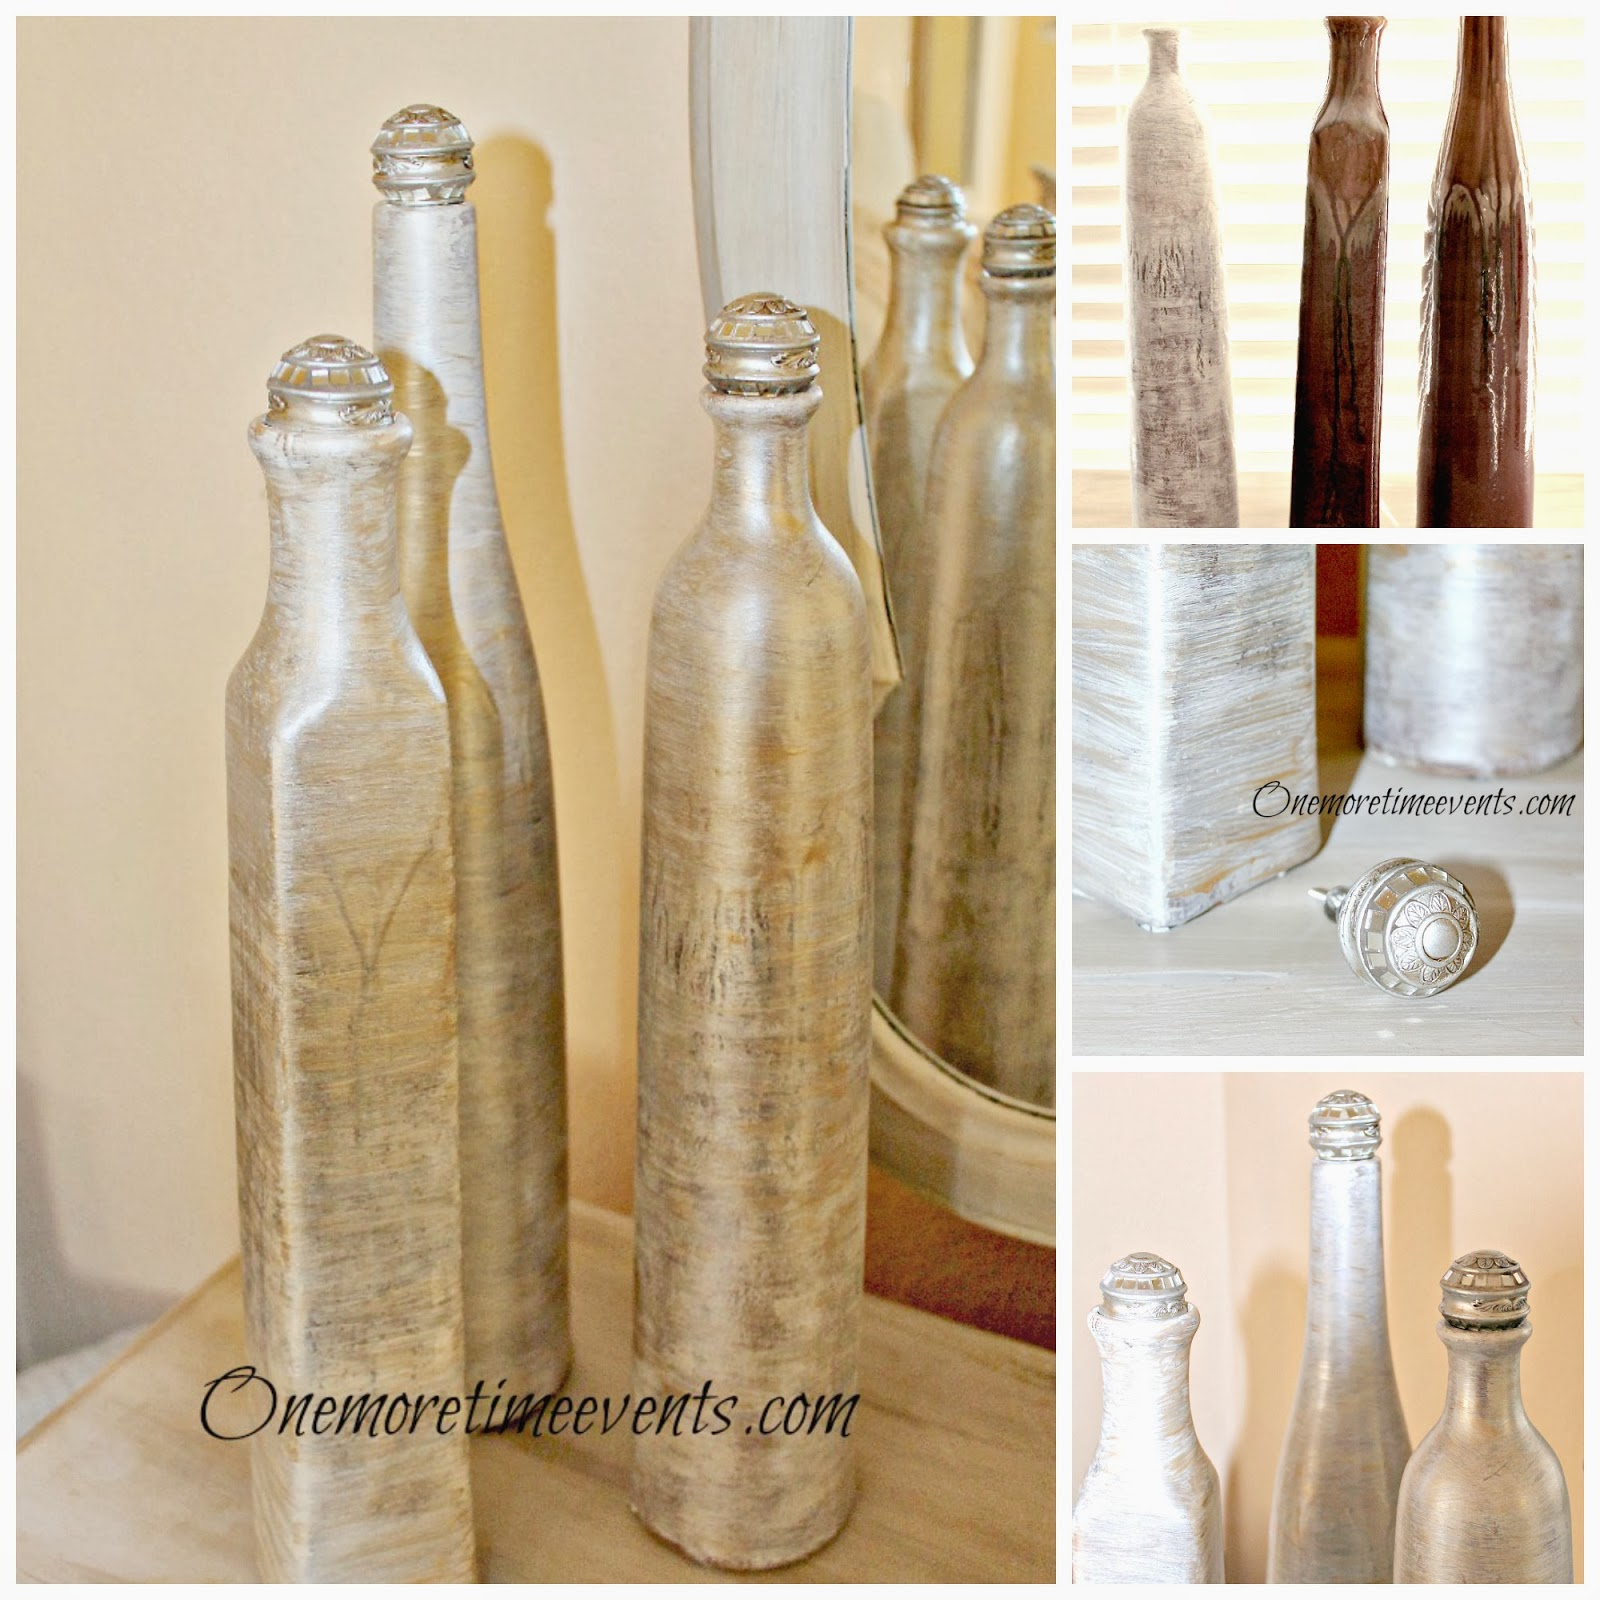 Before and After Faux Ivory Mother of Pearl vase makeover at One More Time Events.com #fauxivorymotherofpearl,#paintingwithmetallics